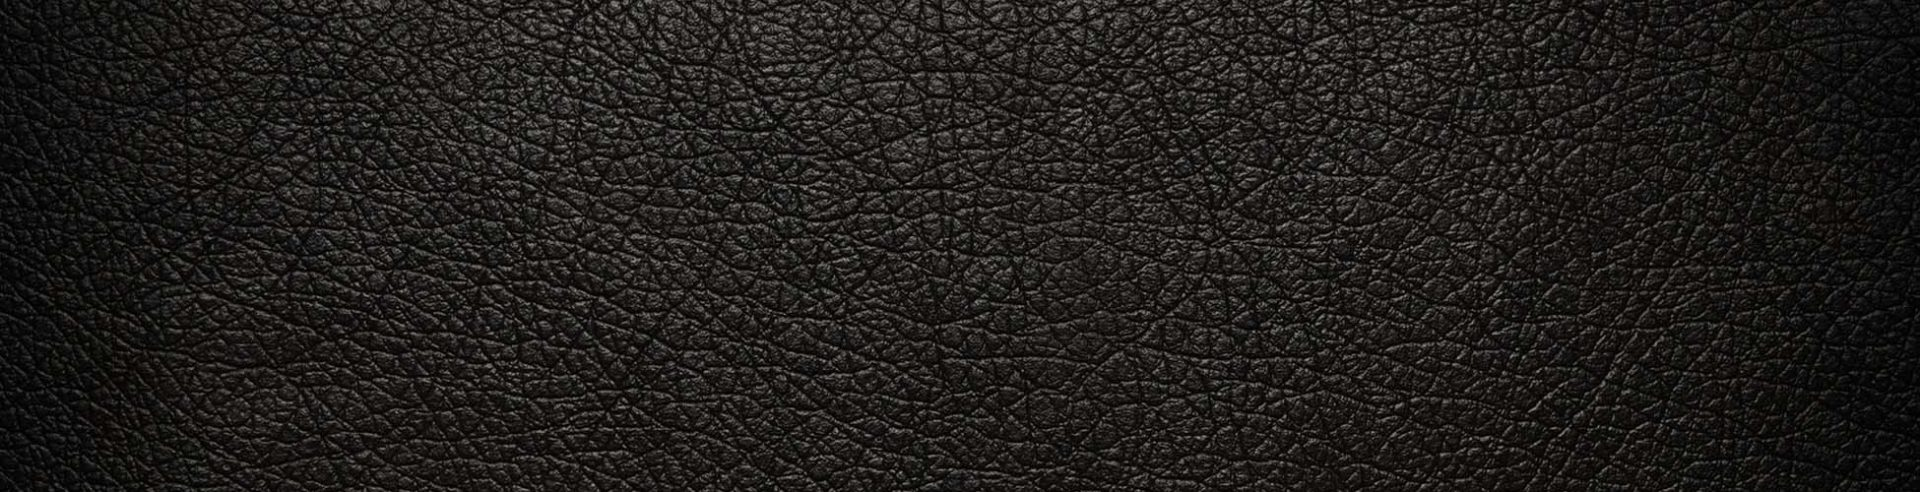 cropped-cropped-cropped-leather-black-cracked-background-texture1-1.jpg